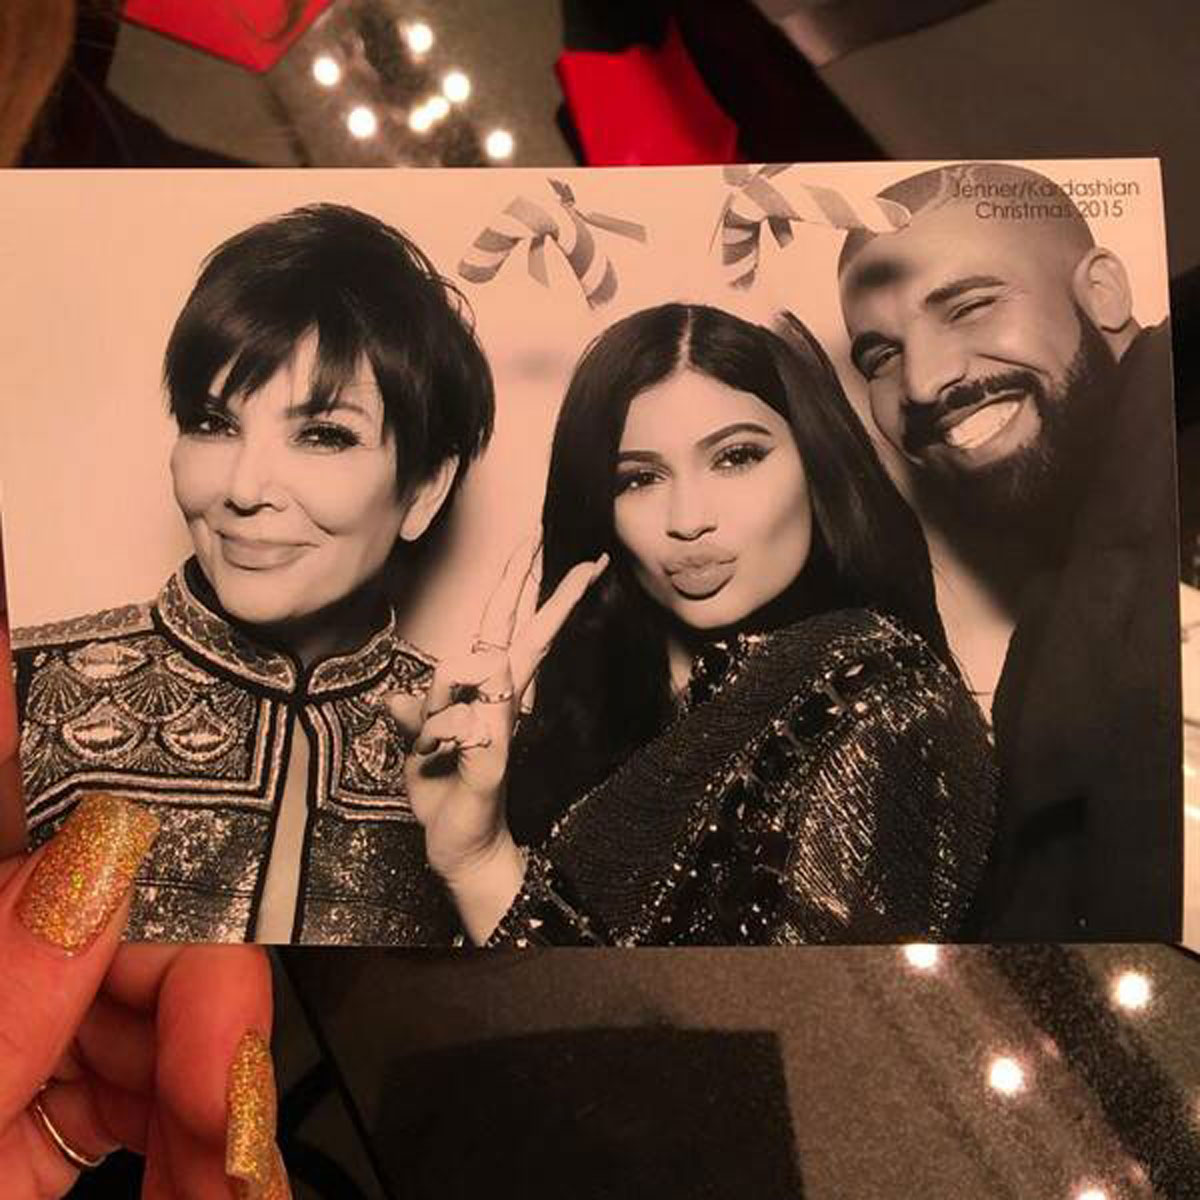 Drake and Kylie Jenner at the 2015 Christmas Eve party